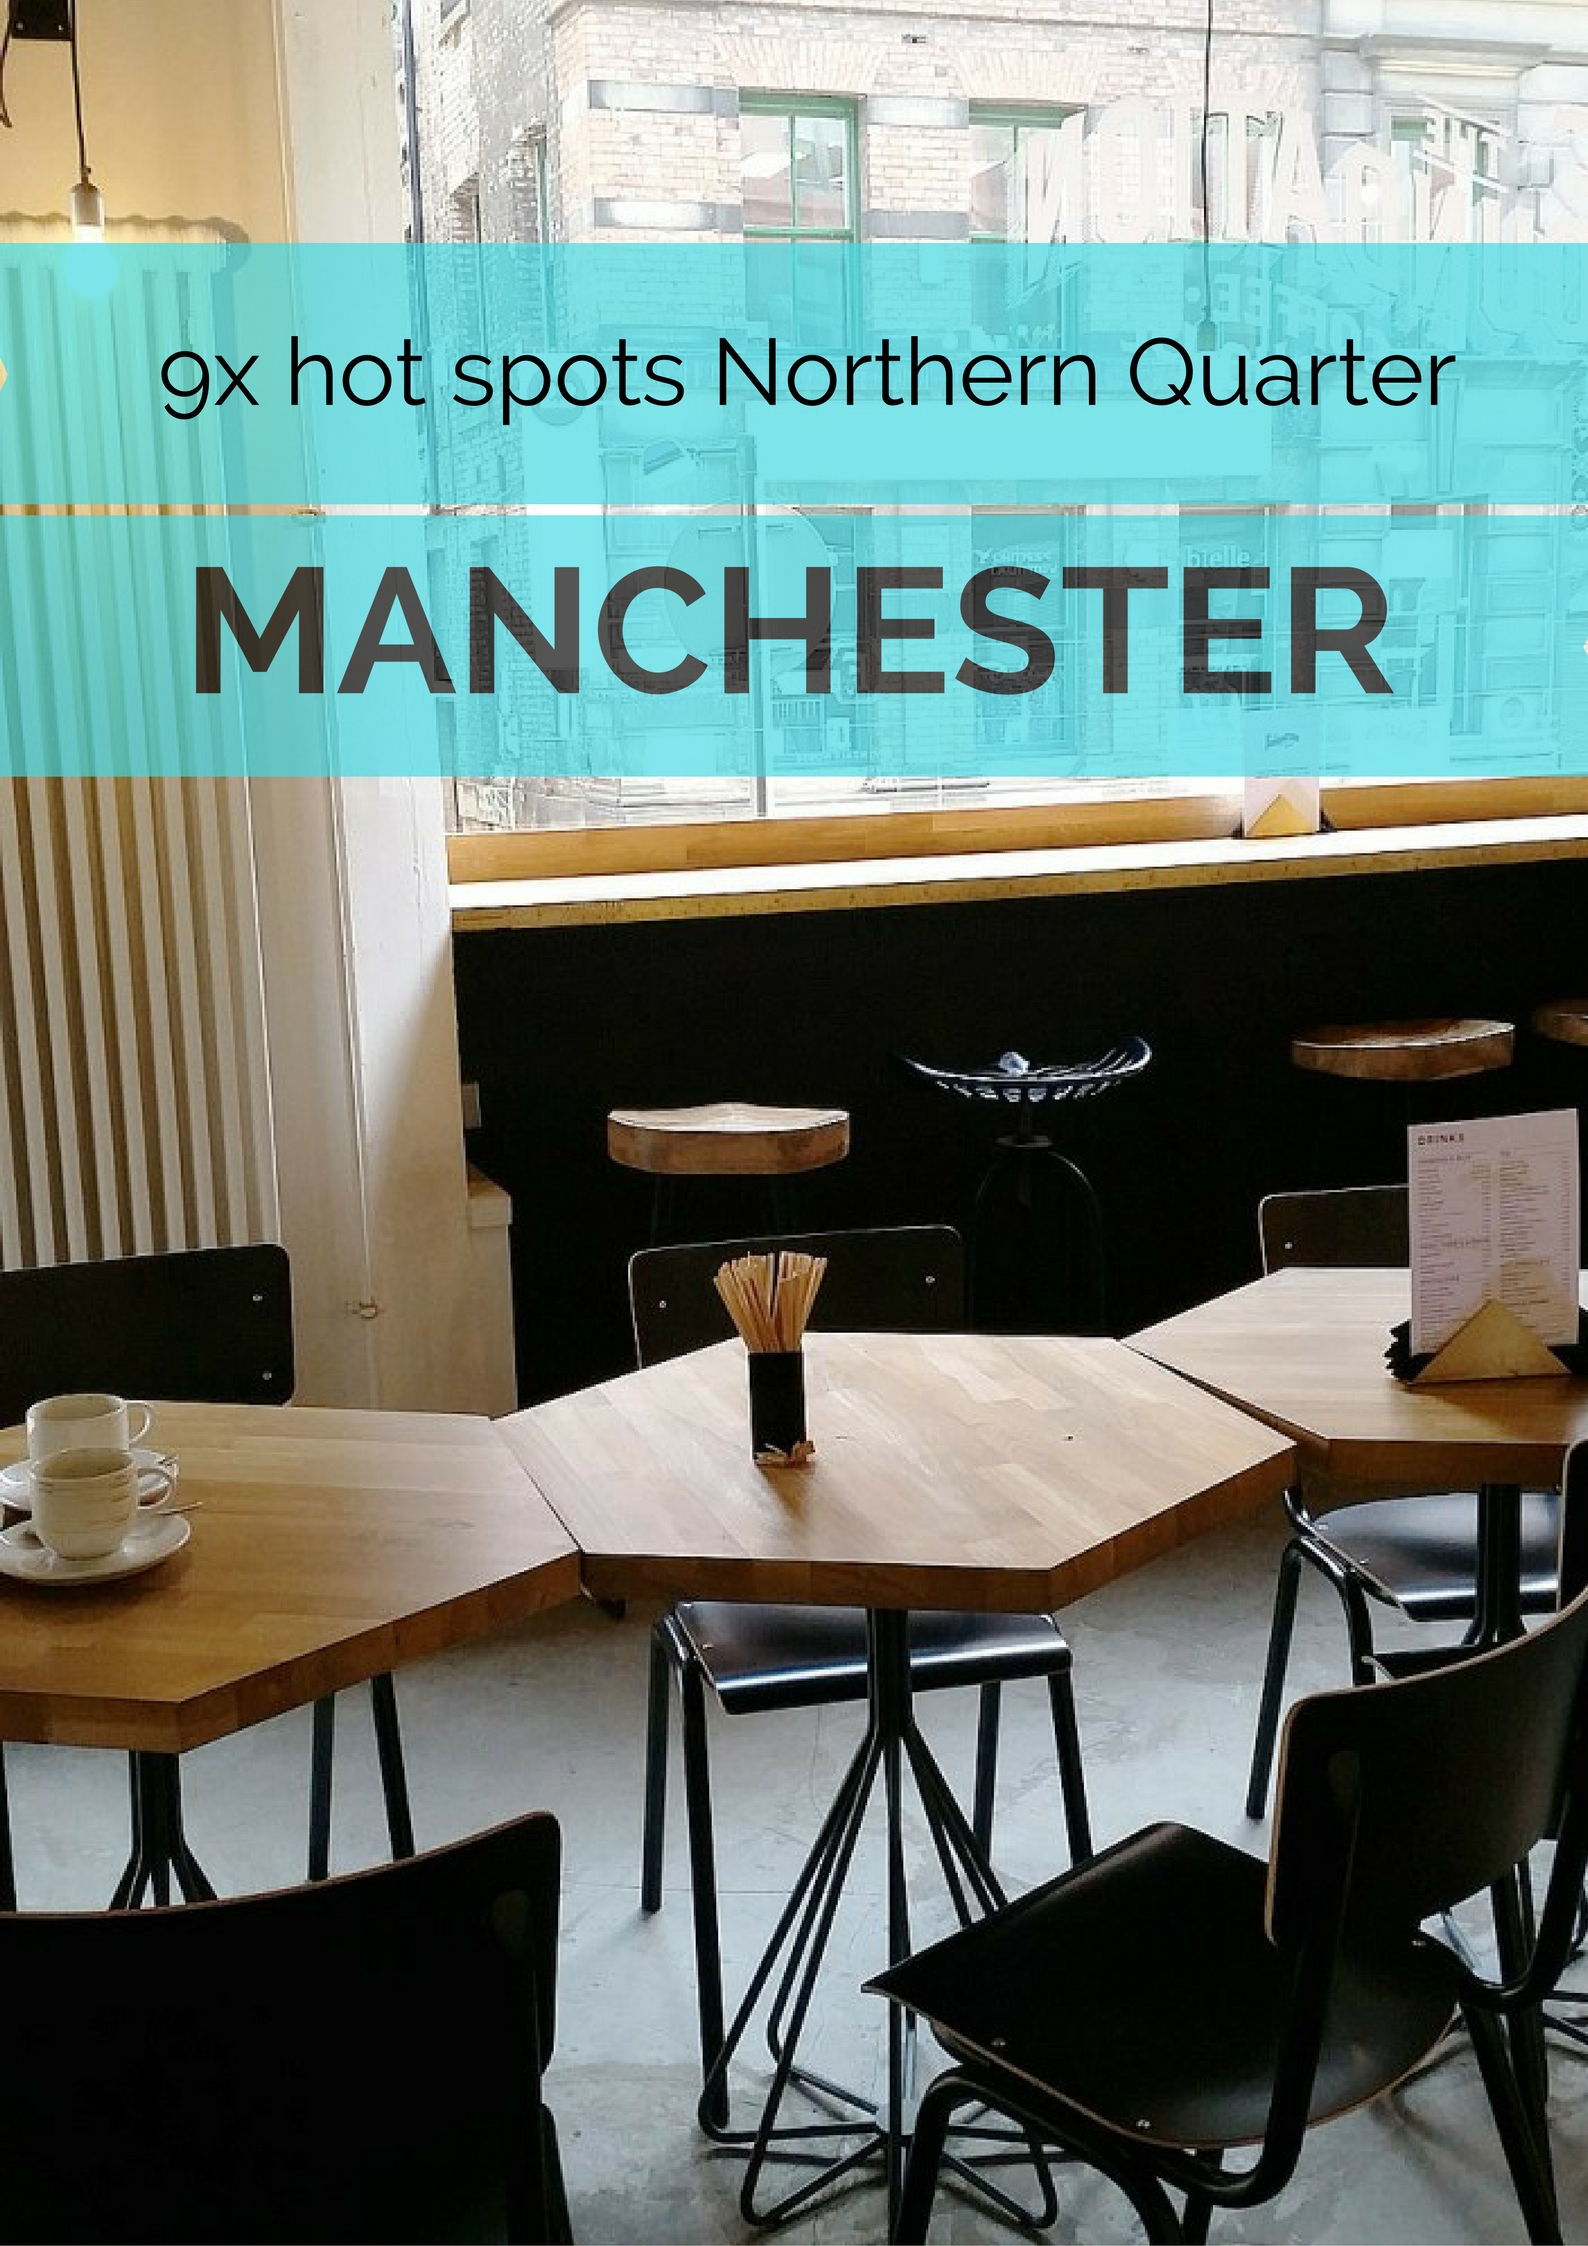 9x hot spots in the Northern Quarter, Manchester - Map of Joy